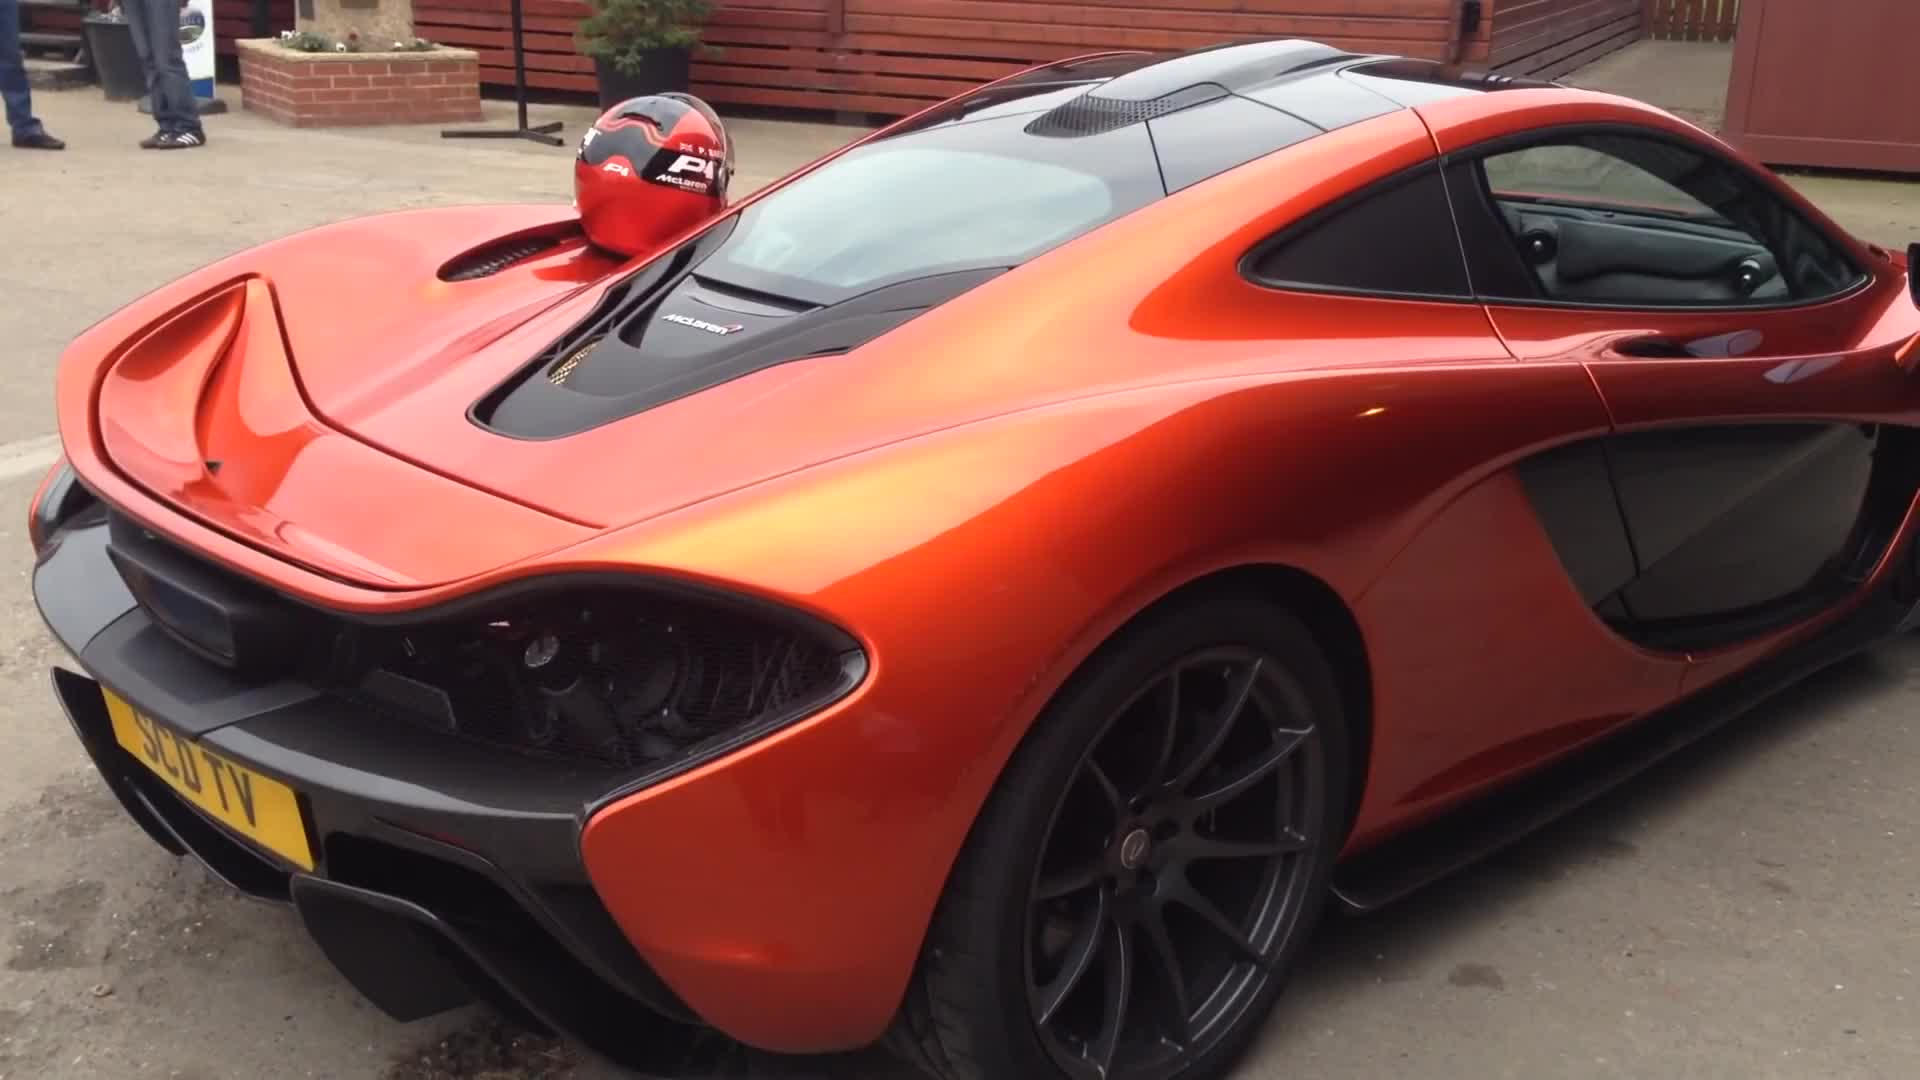 mclaren p1 switching to race mode gif | find, make & share gfycat gifs